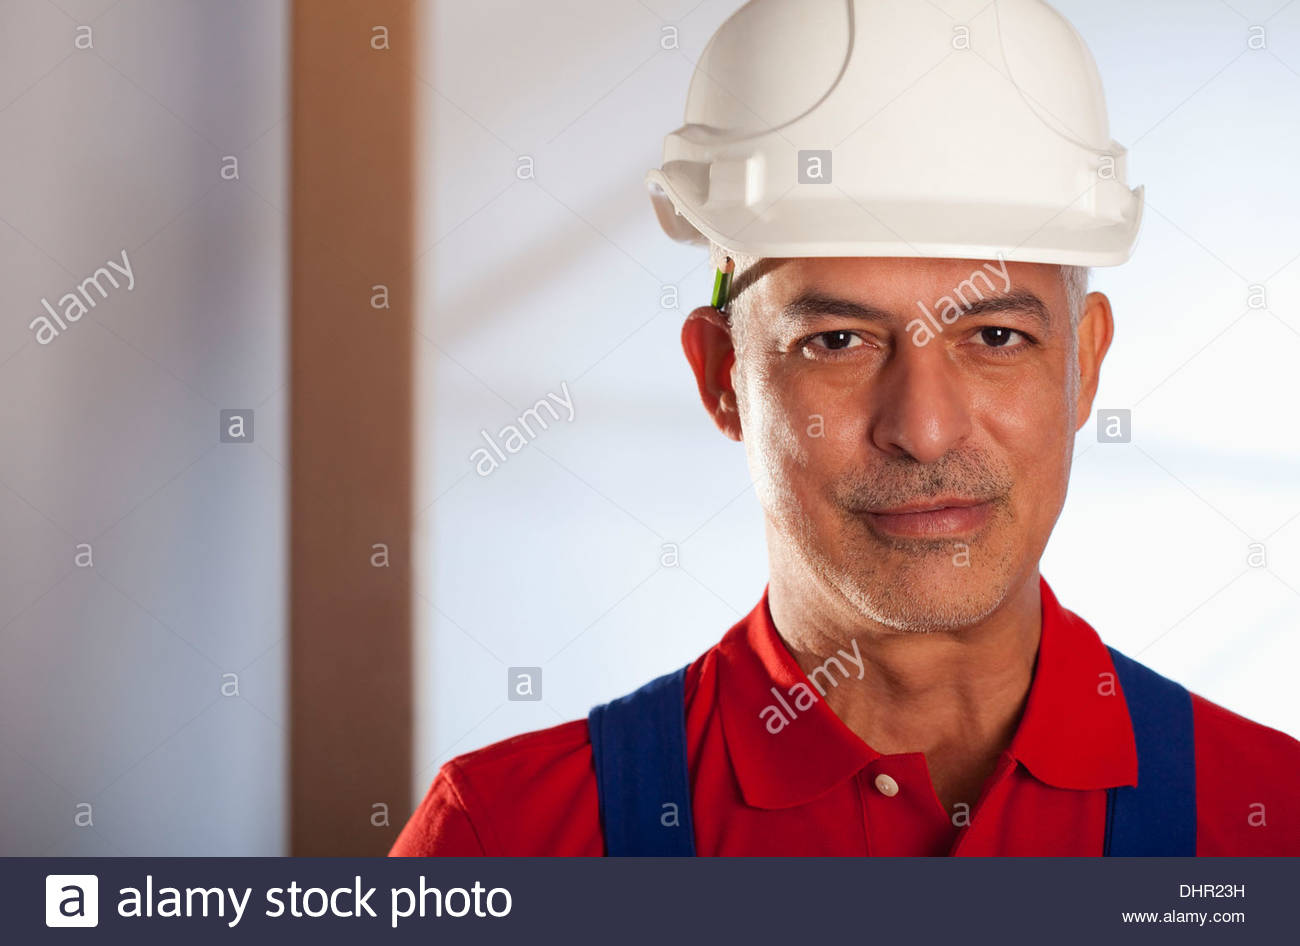 Older Construction worker helmet hard hat portrait Stock Photo